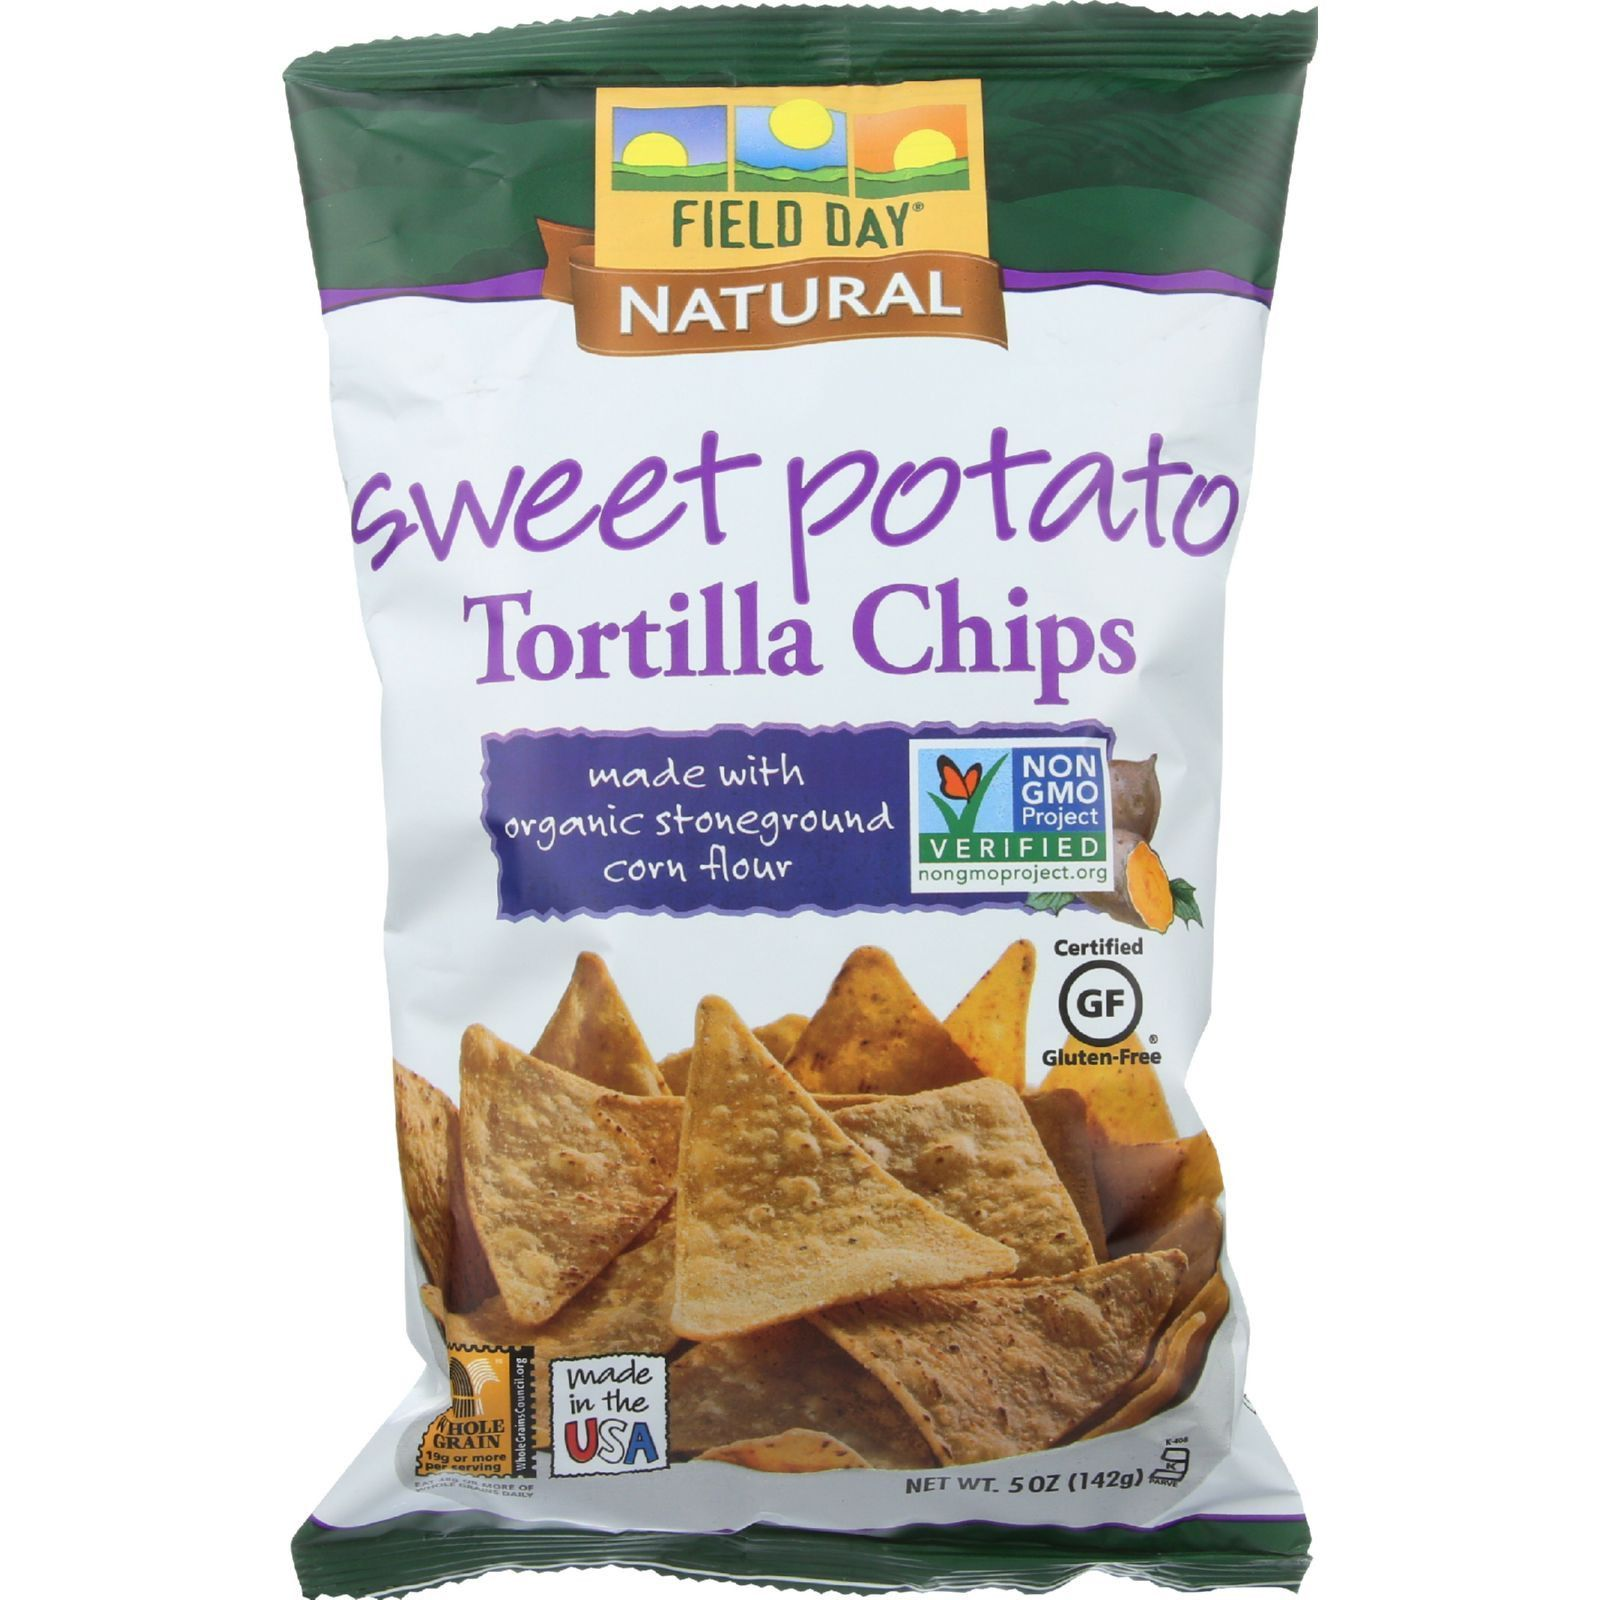 Field Day Tortilla Chips - Organic - Sweet Potato - 5 oz - case of 12 - Field Day Sweet Potato Tortilla Chips add a hint of sweetness to every bite! Made with organic sweet potato and yellow corn, these delightfully crispy chips take sweet and salty to a whole new level. Use as a base for nachos, alongside chili, or with any of Field Day Organic Salsas. They are gluten free and low in sodium, so let the munching begin! Organic: 70%+ Organic Gluten Free: Gluten Free Dairy Free: Yes Yeast…